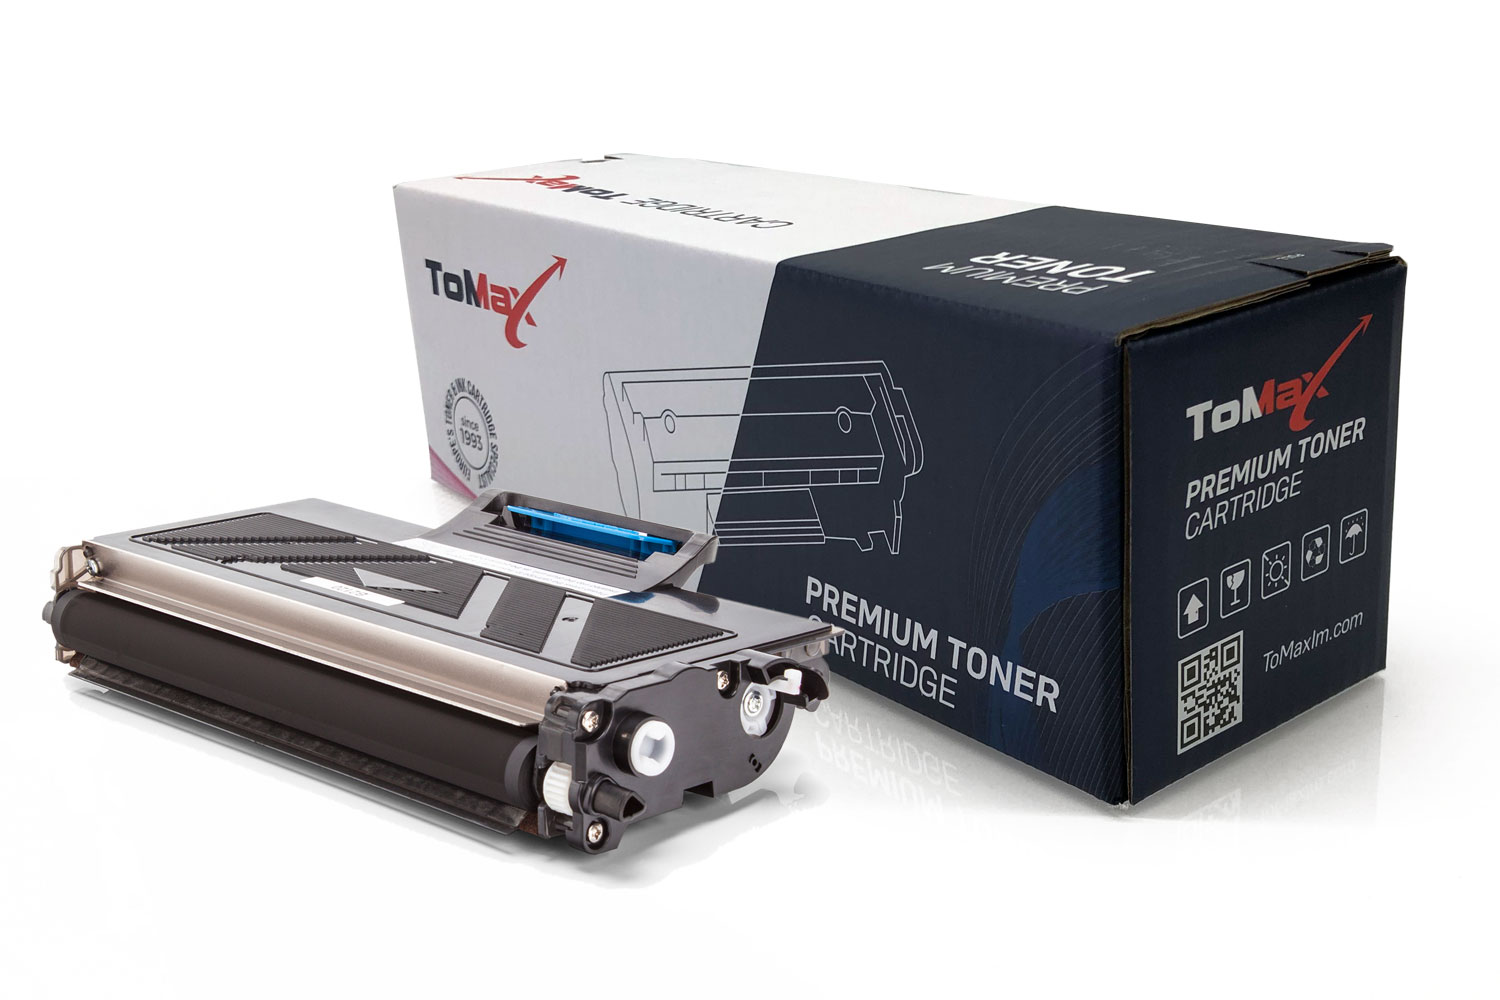 ToMax Premium Toner Cartridge replaces Samsung MLT-D101S (SU696A) / 101S Black